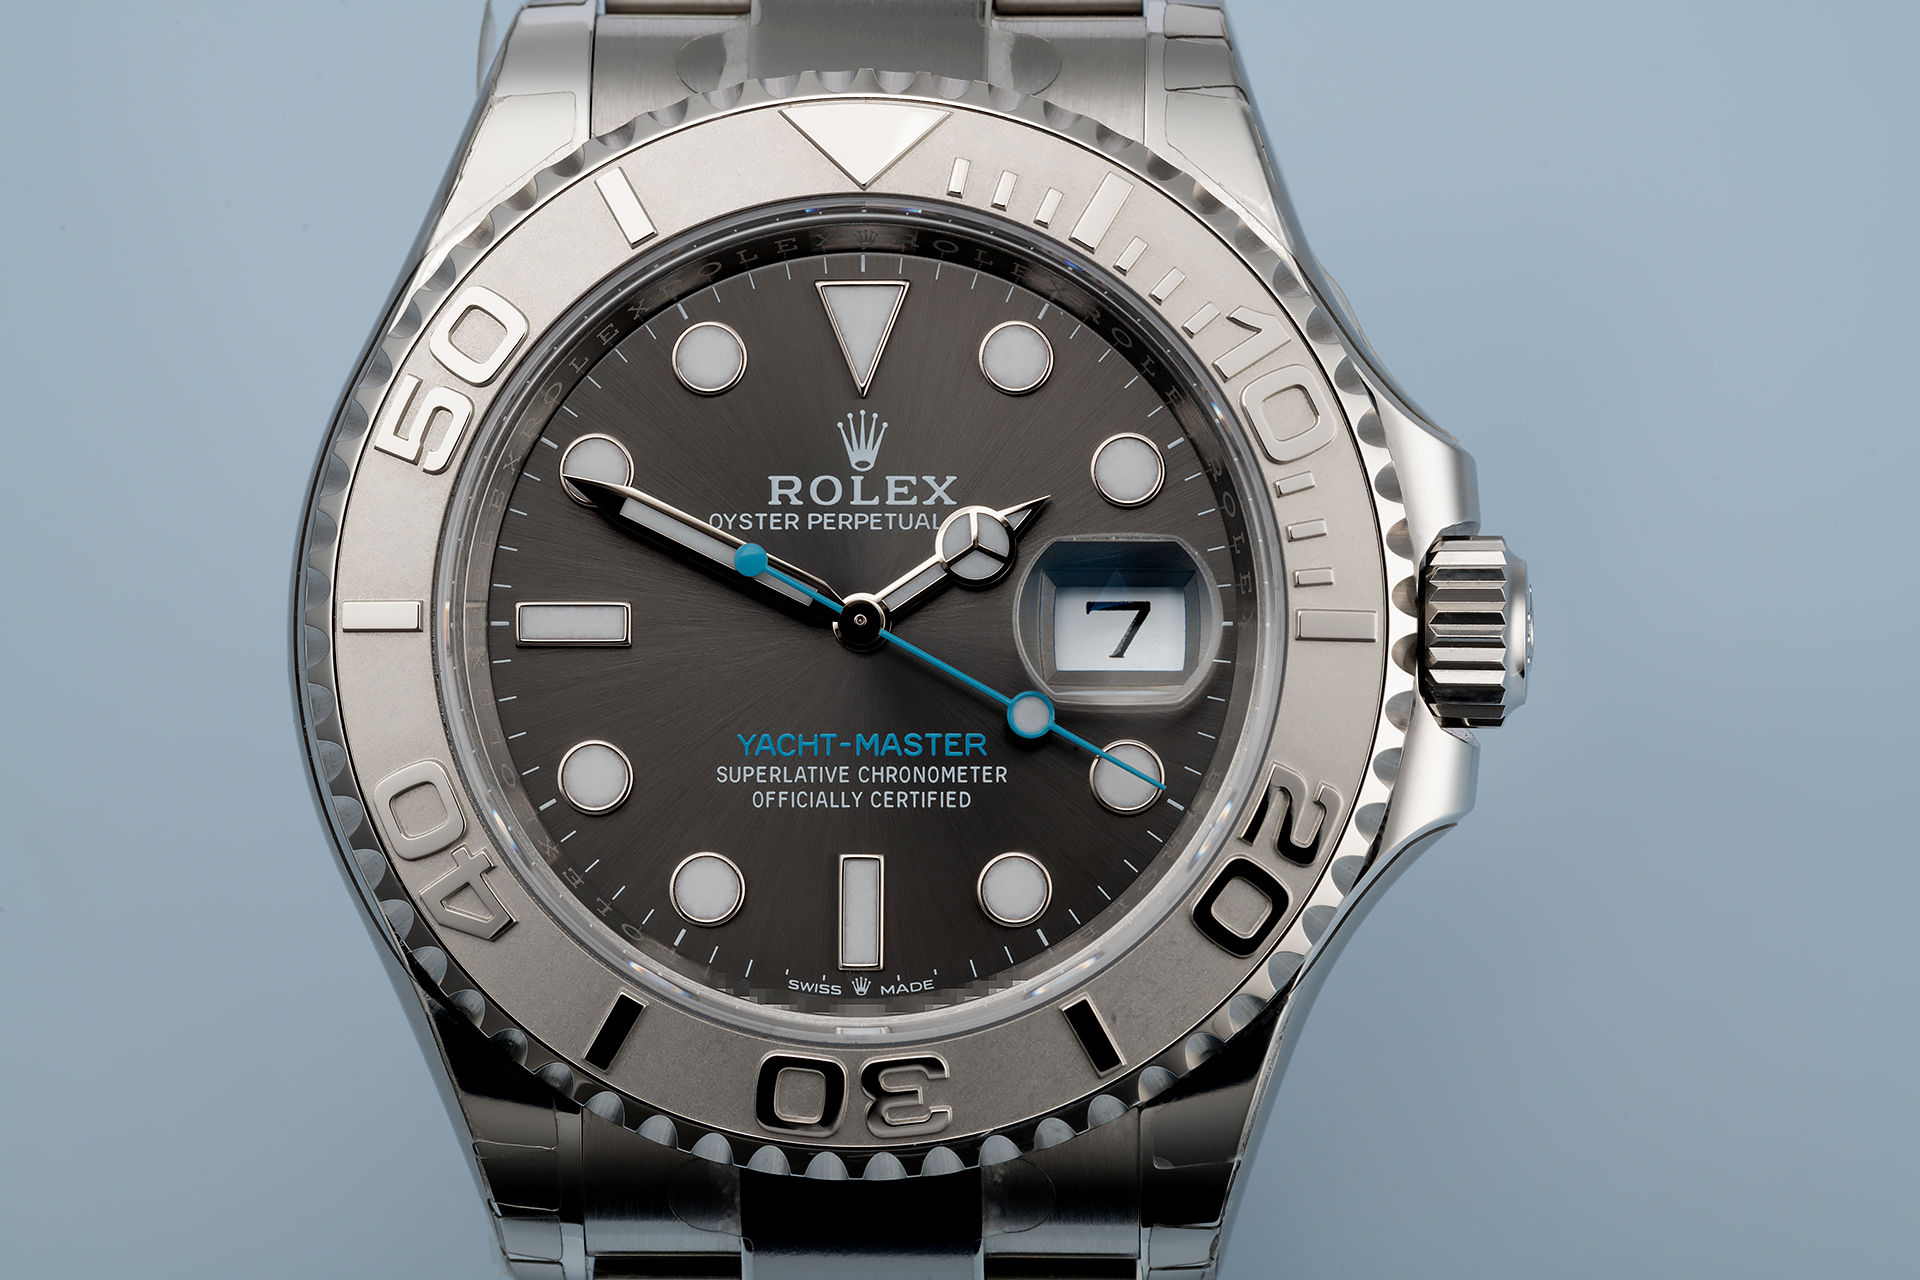 ref 126622 | Brand New '5 Year Warranty'  | Rolex Yacht-Master